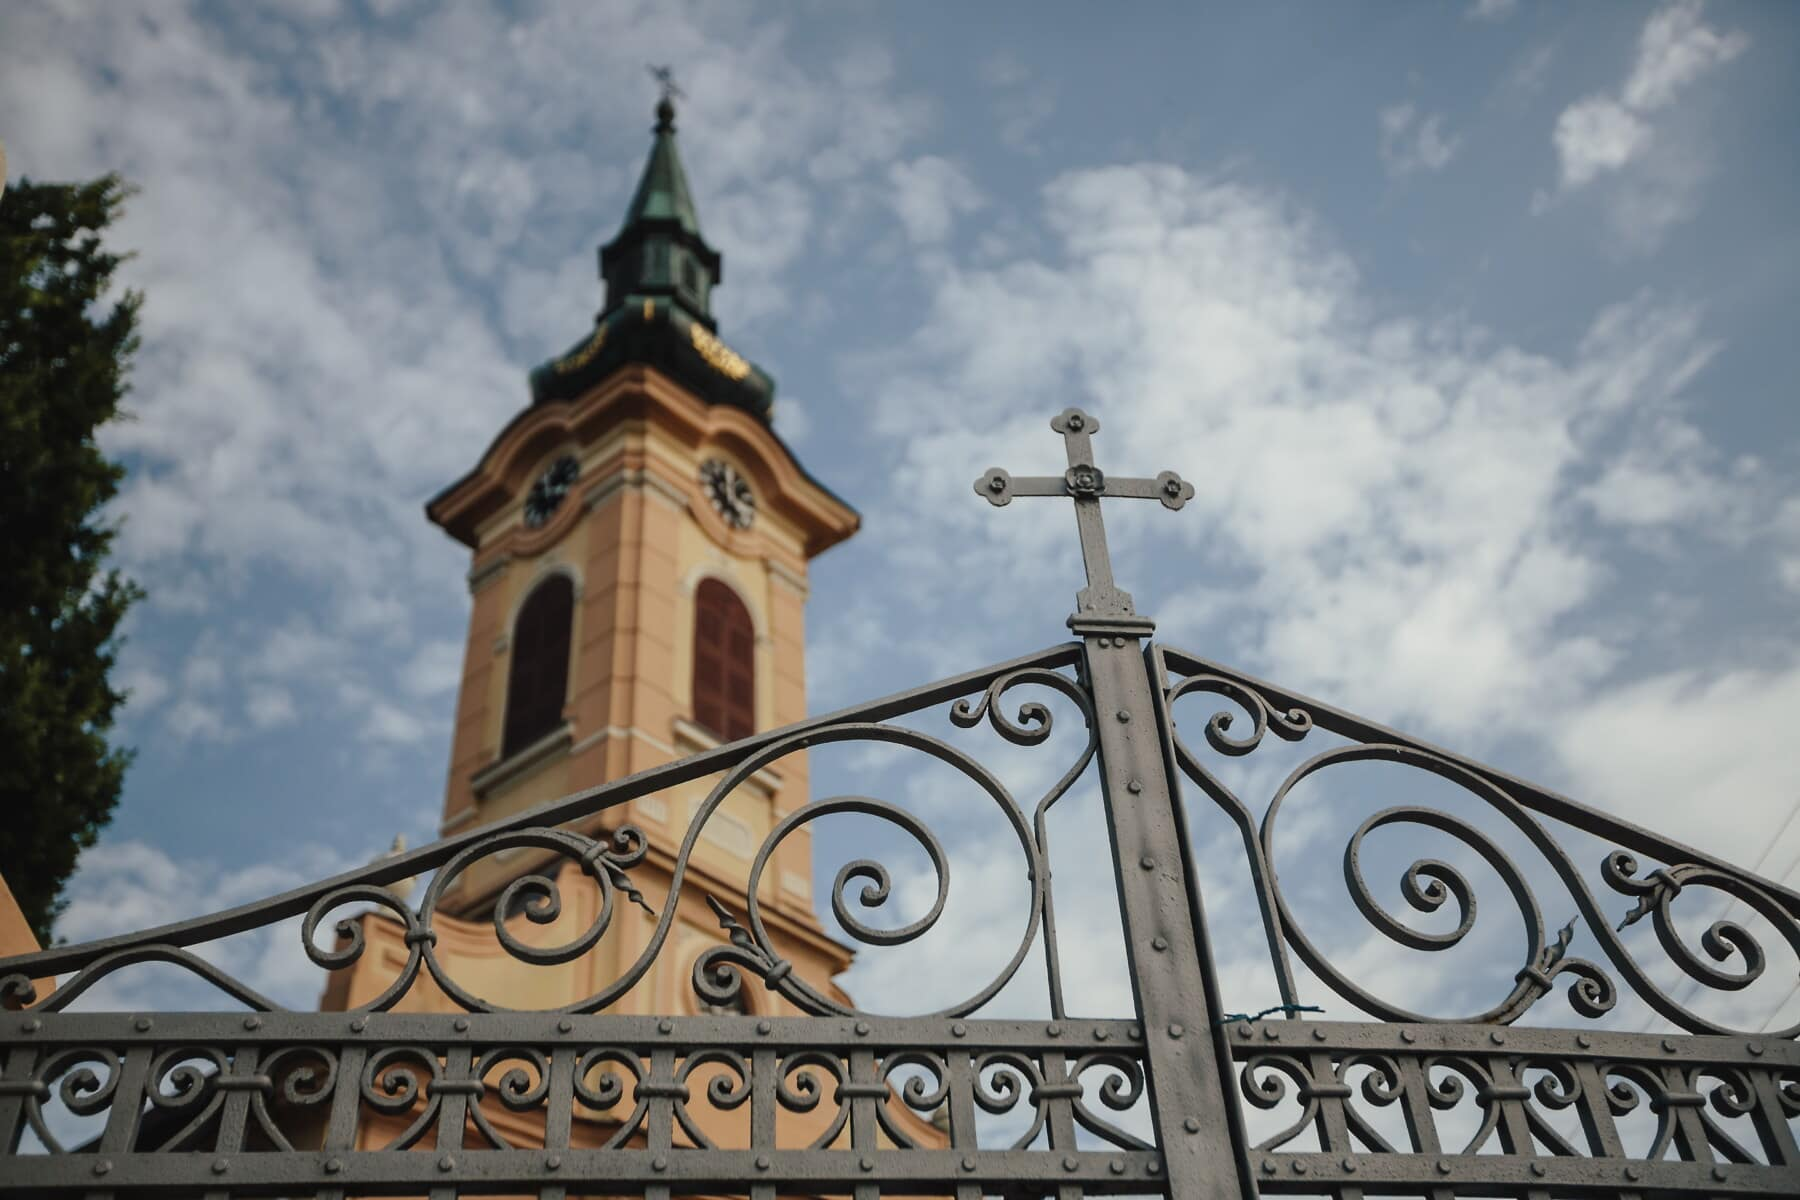 gate, fence, cross, cast iron, church tower, church, architecture, old, religion, ancient